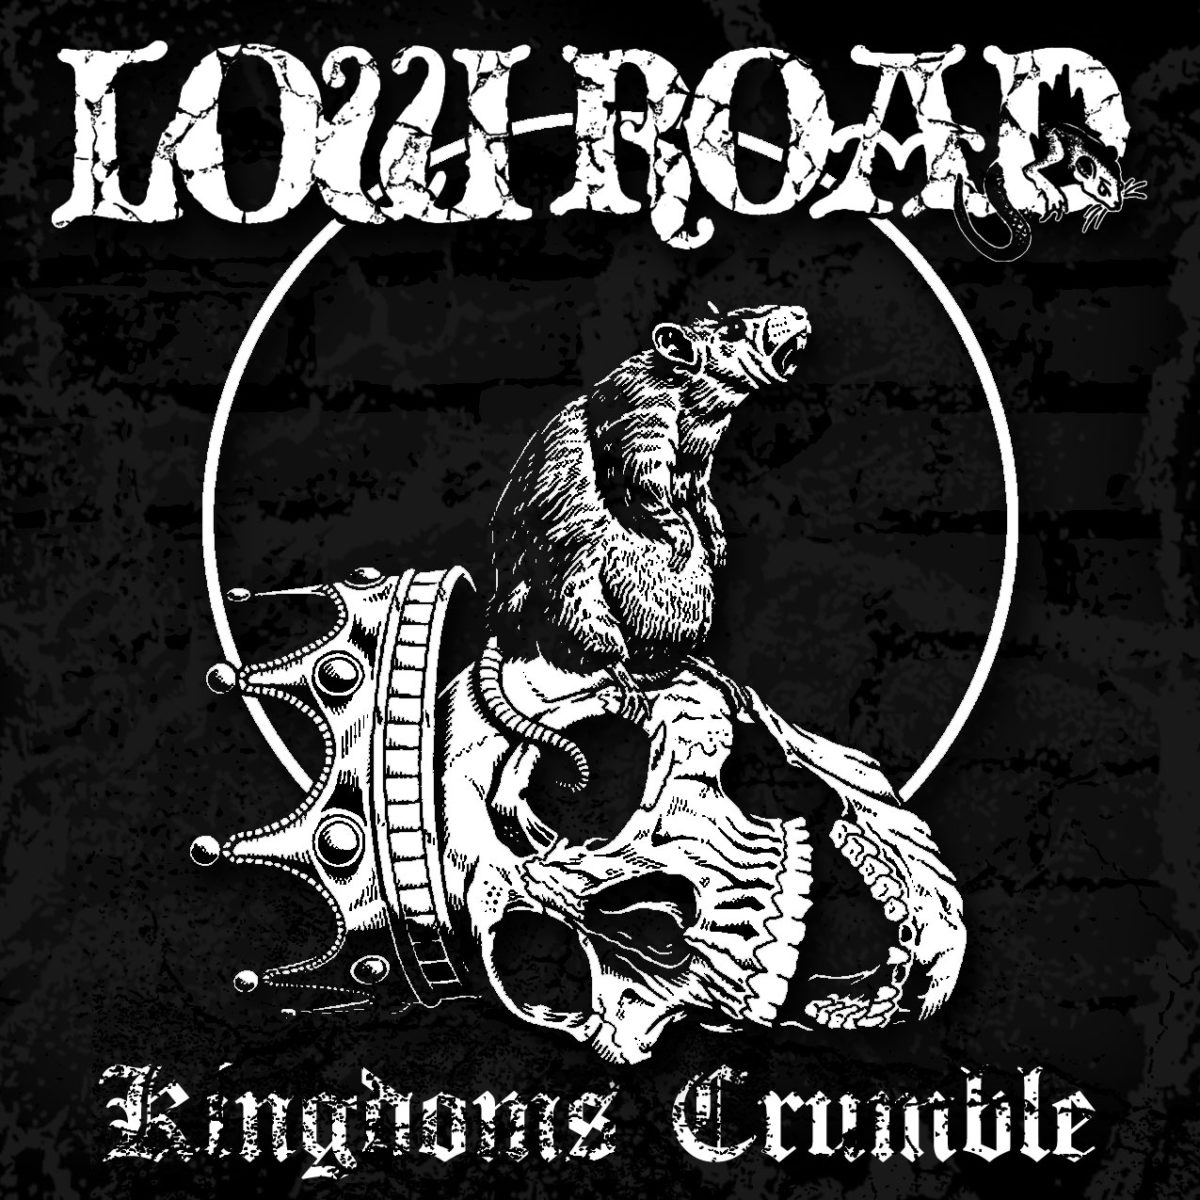 Low Road - Kingdom's Crumble - 2015